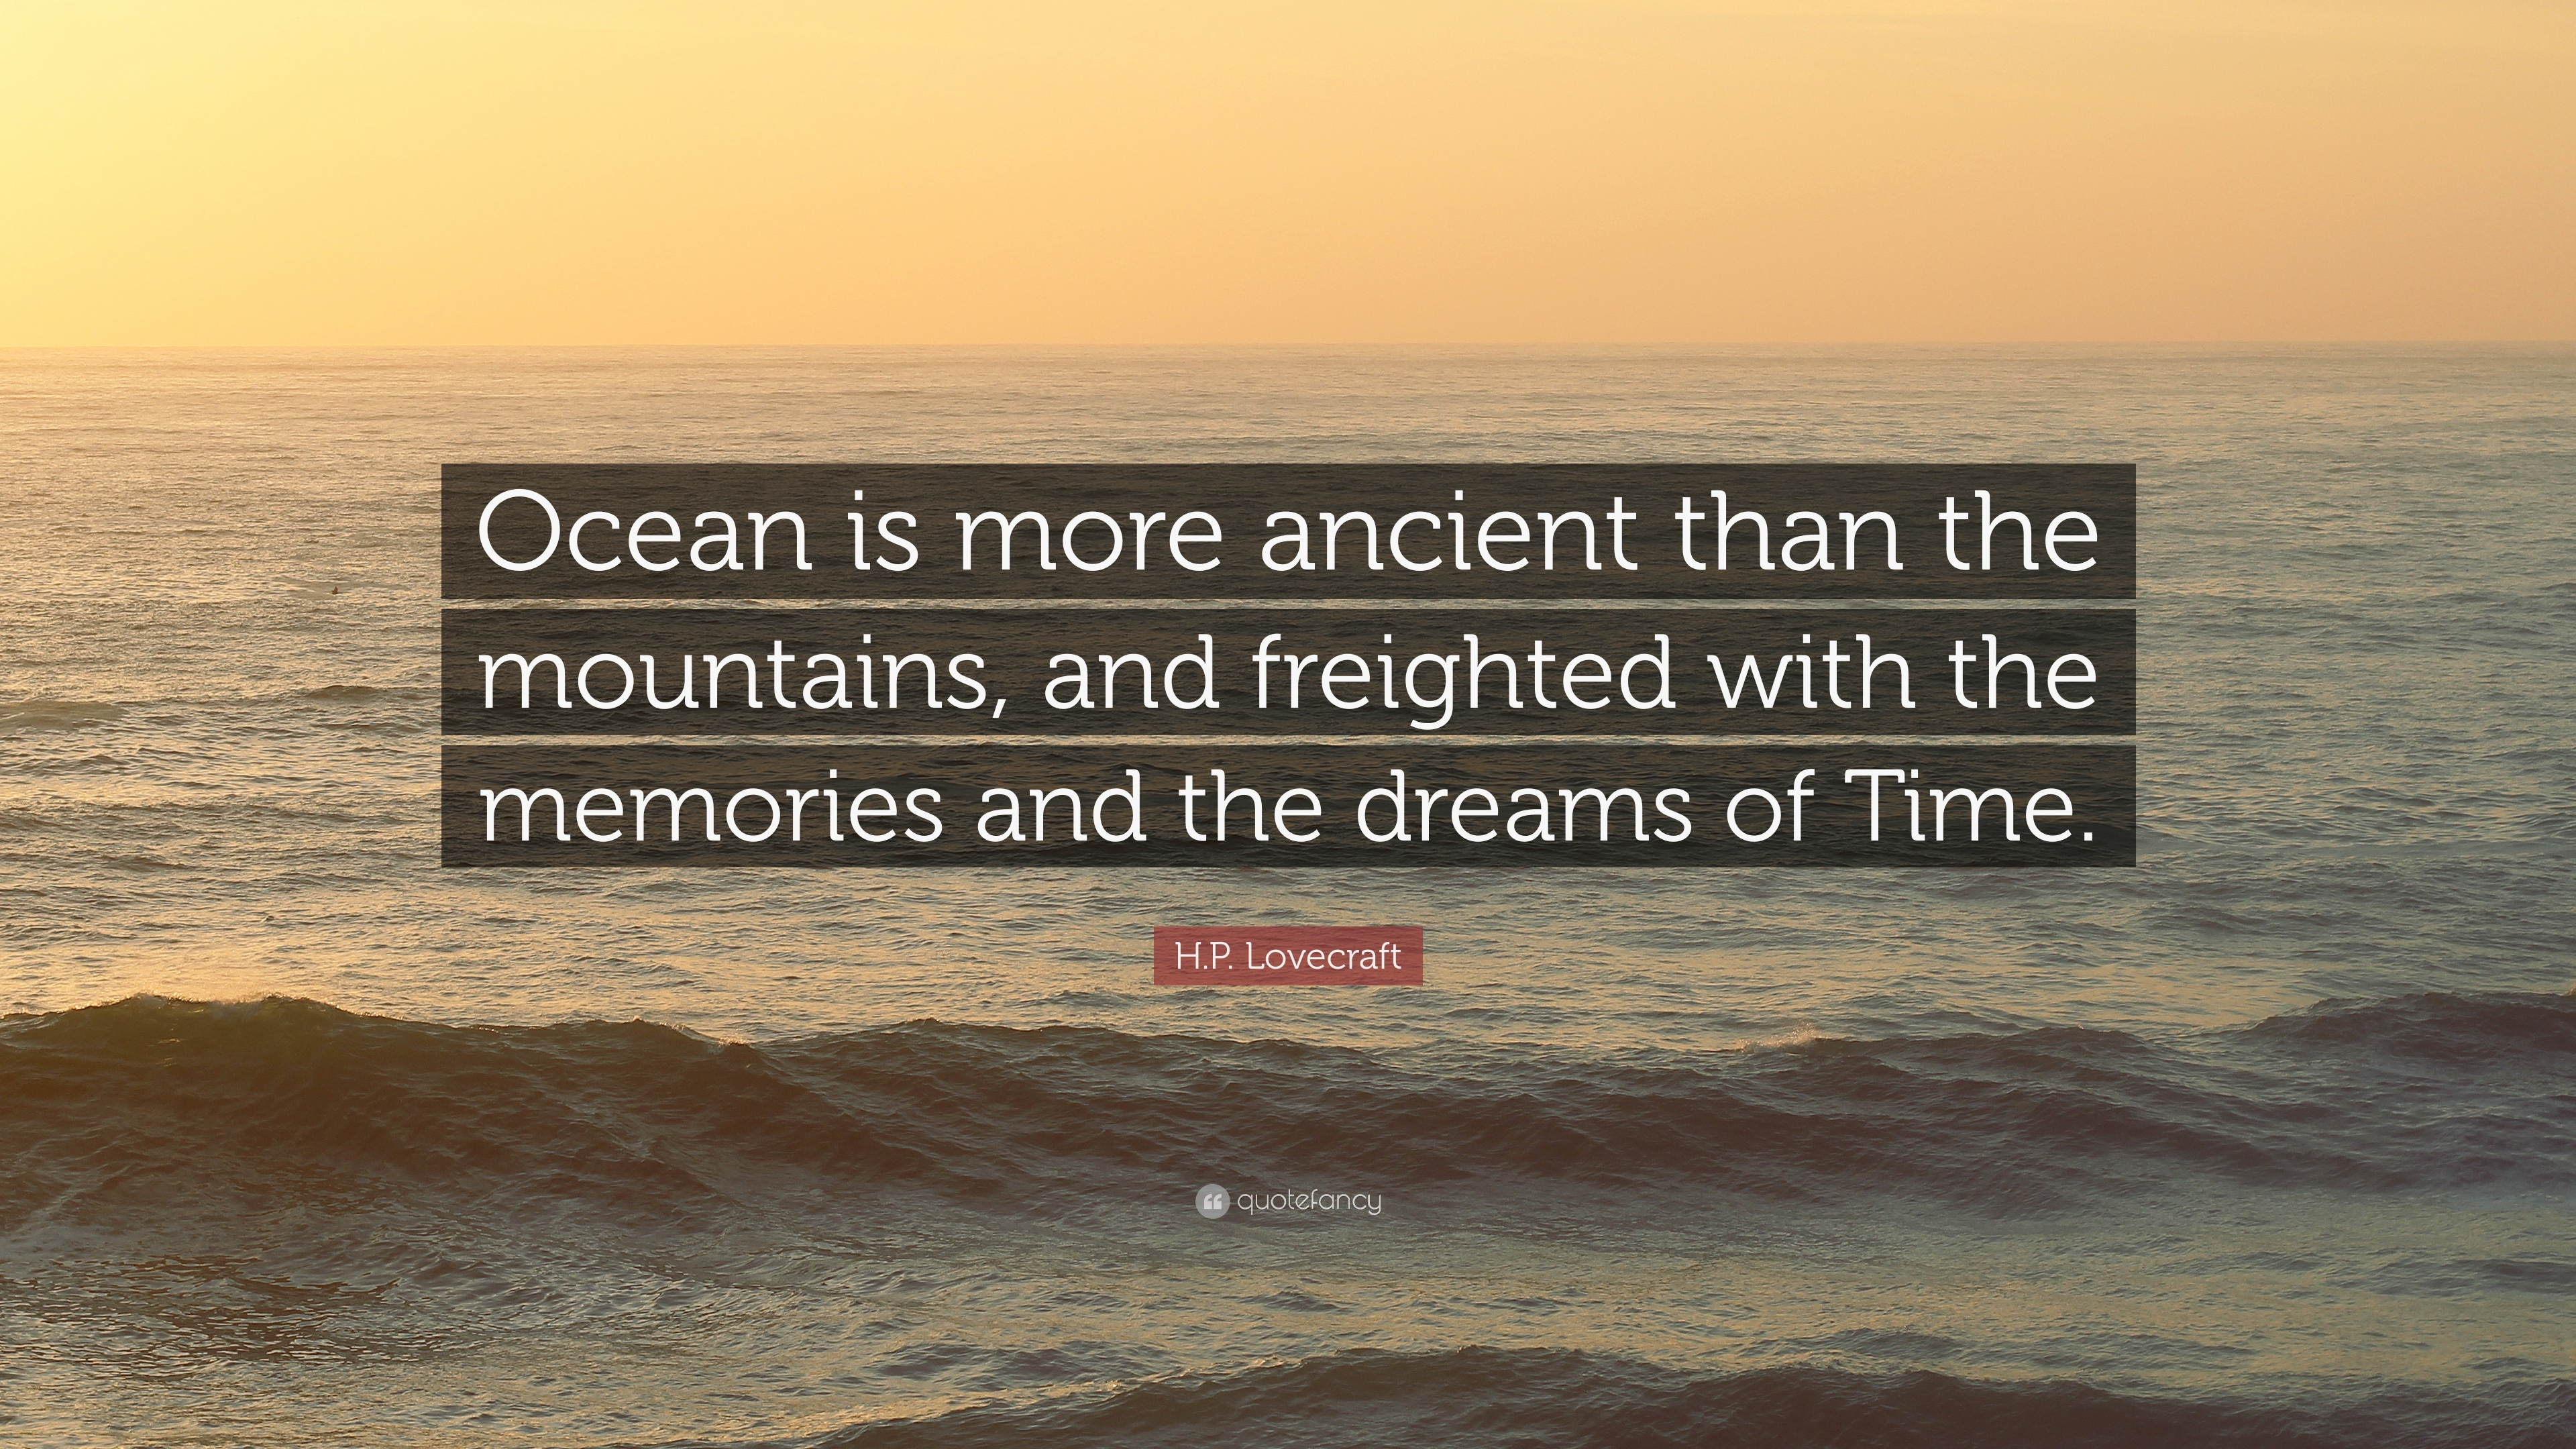 Quotes About Ocean | H P Lovecraft Quote Ocean Is More Ancient Than The Mountains And